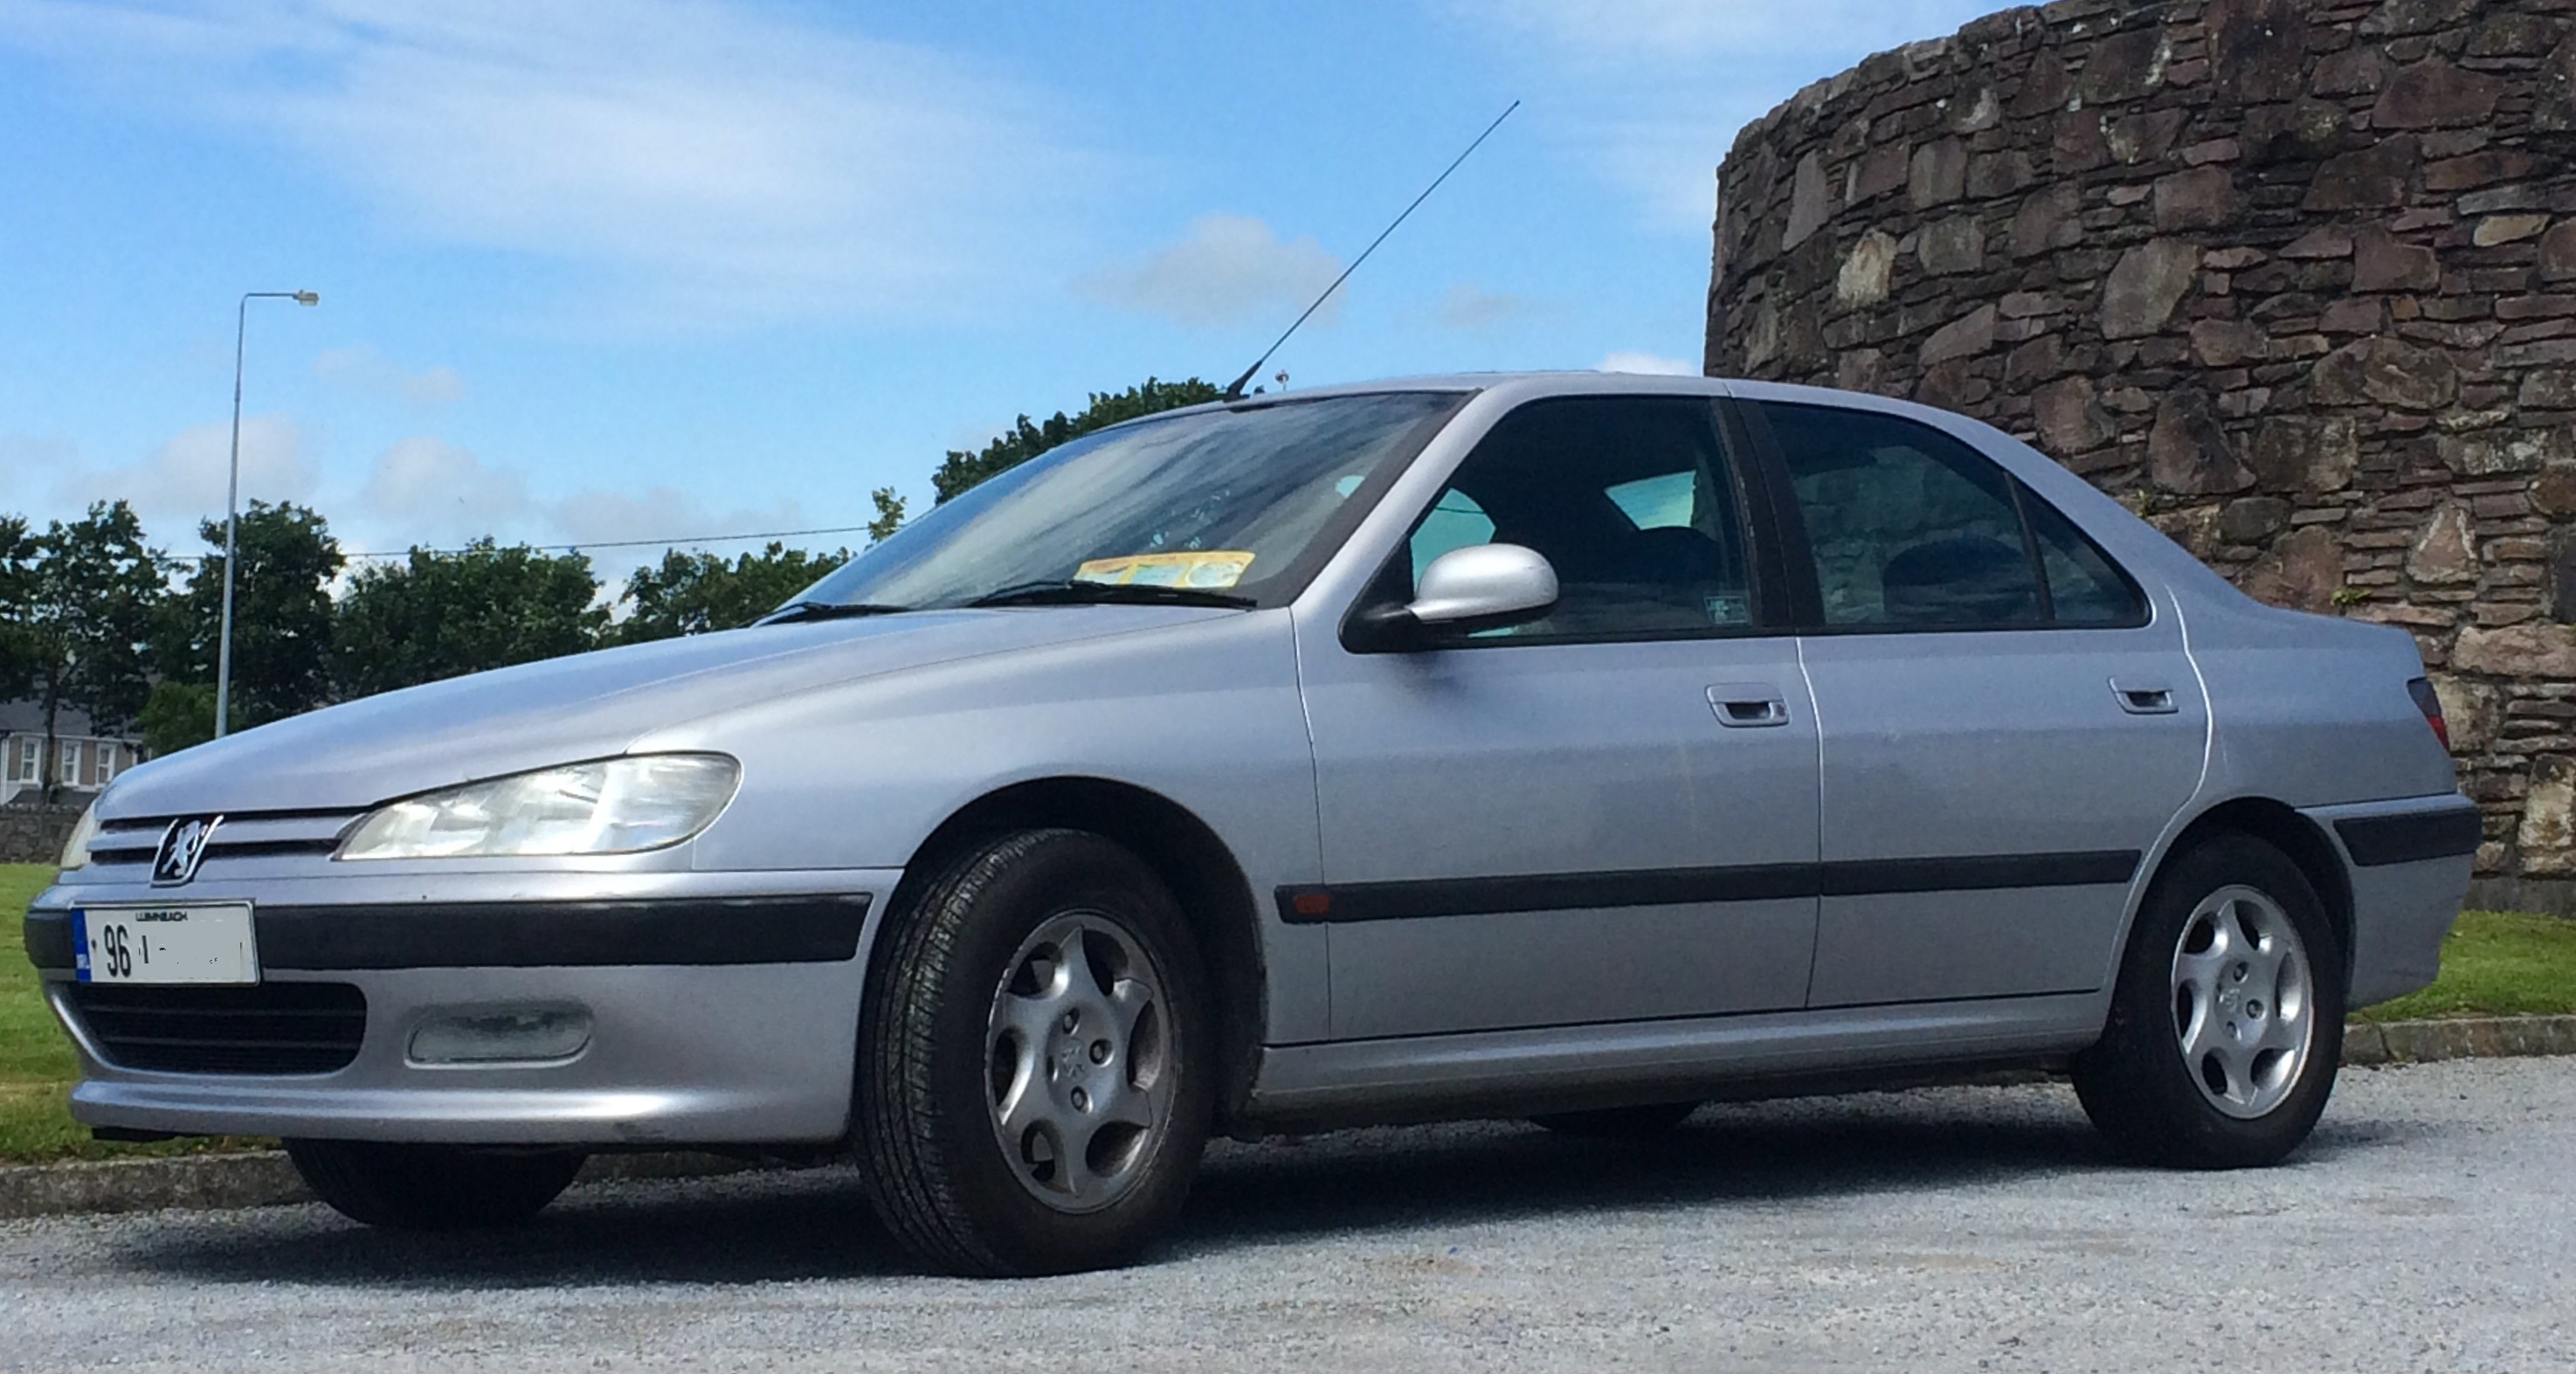 1996 Peugeot 406: the press reviews started in July 1995 and the car went on